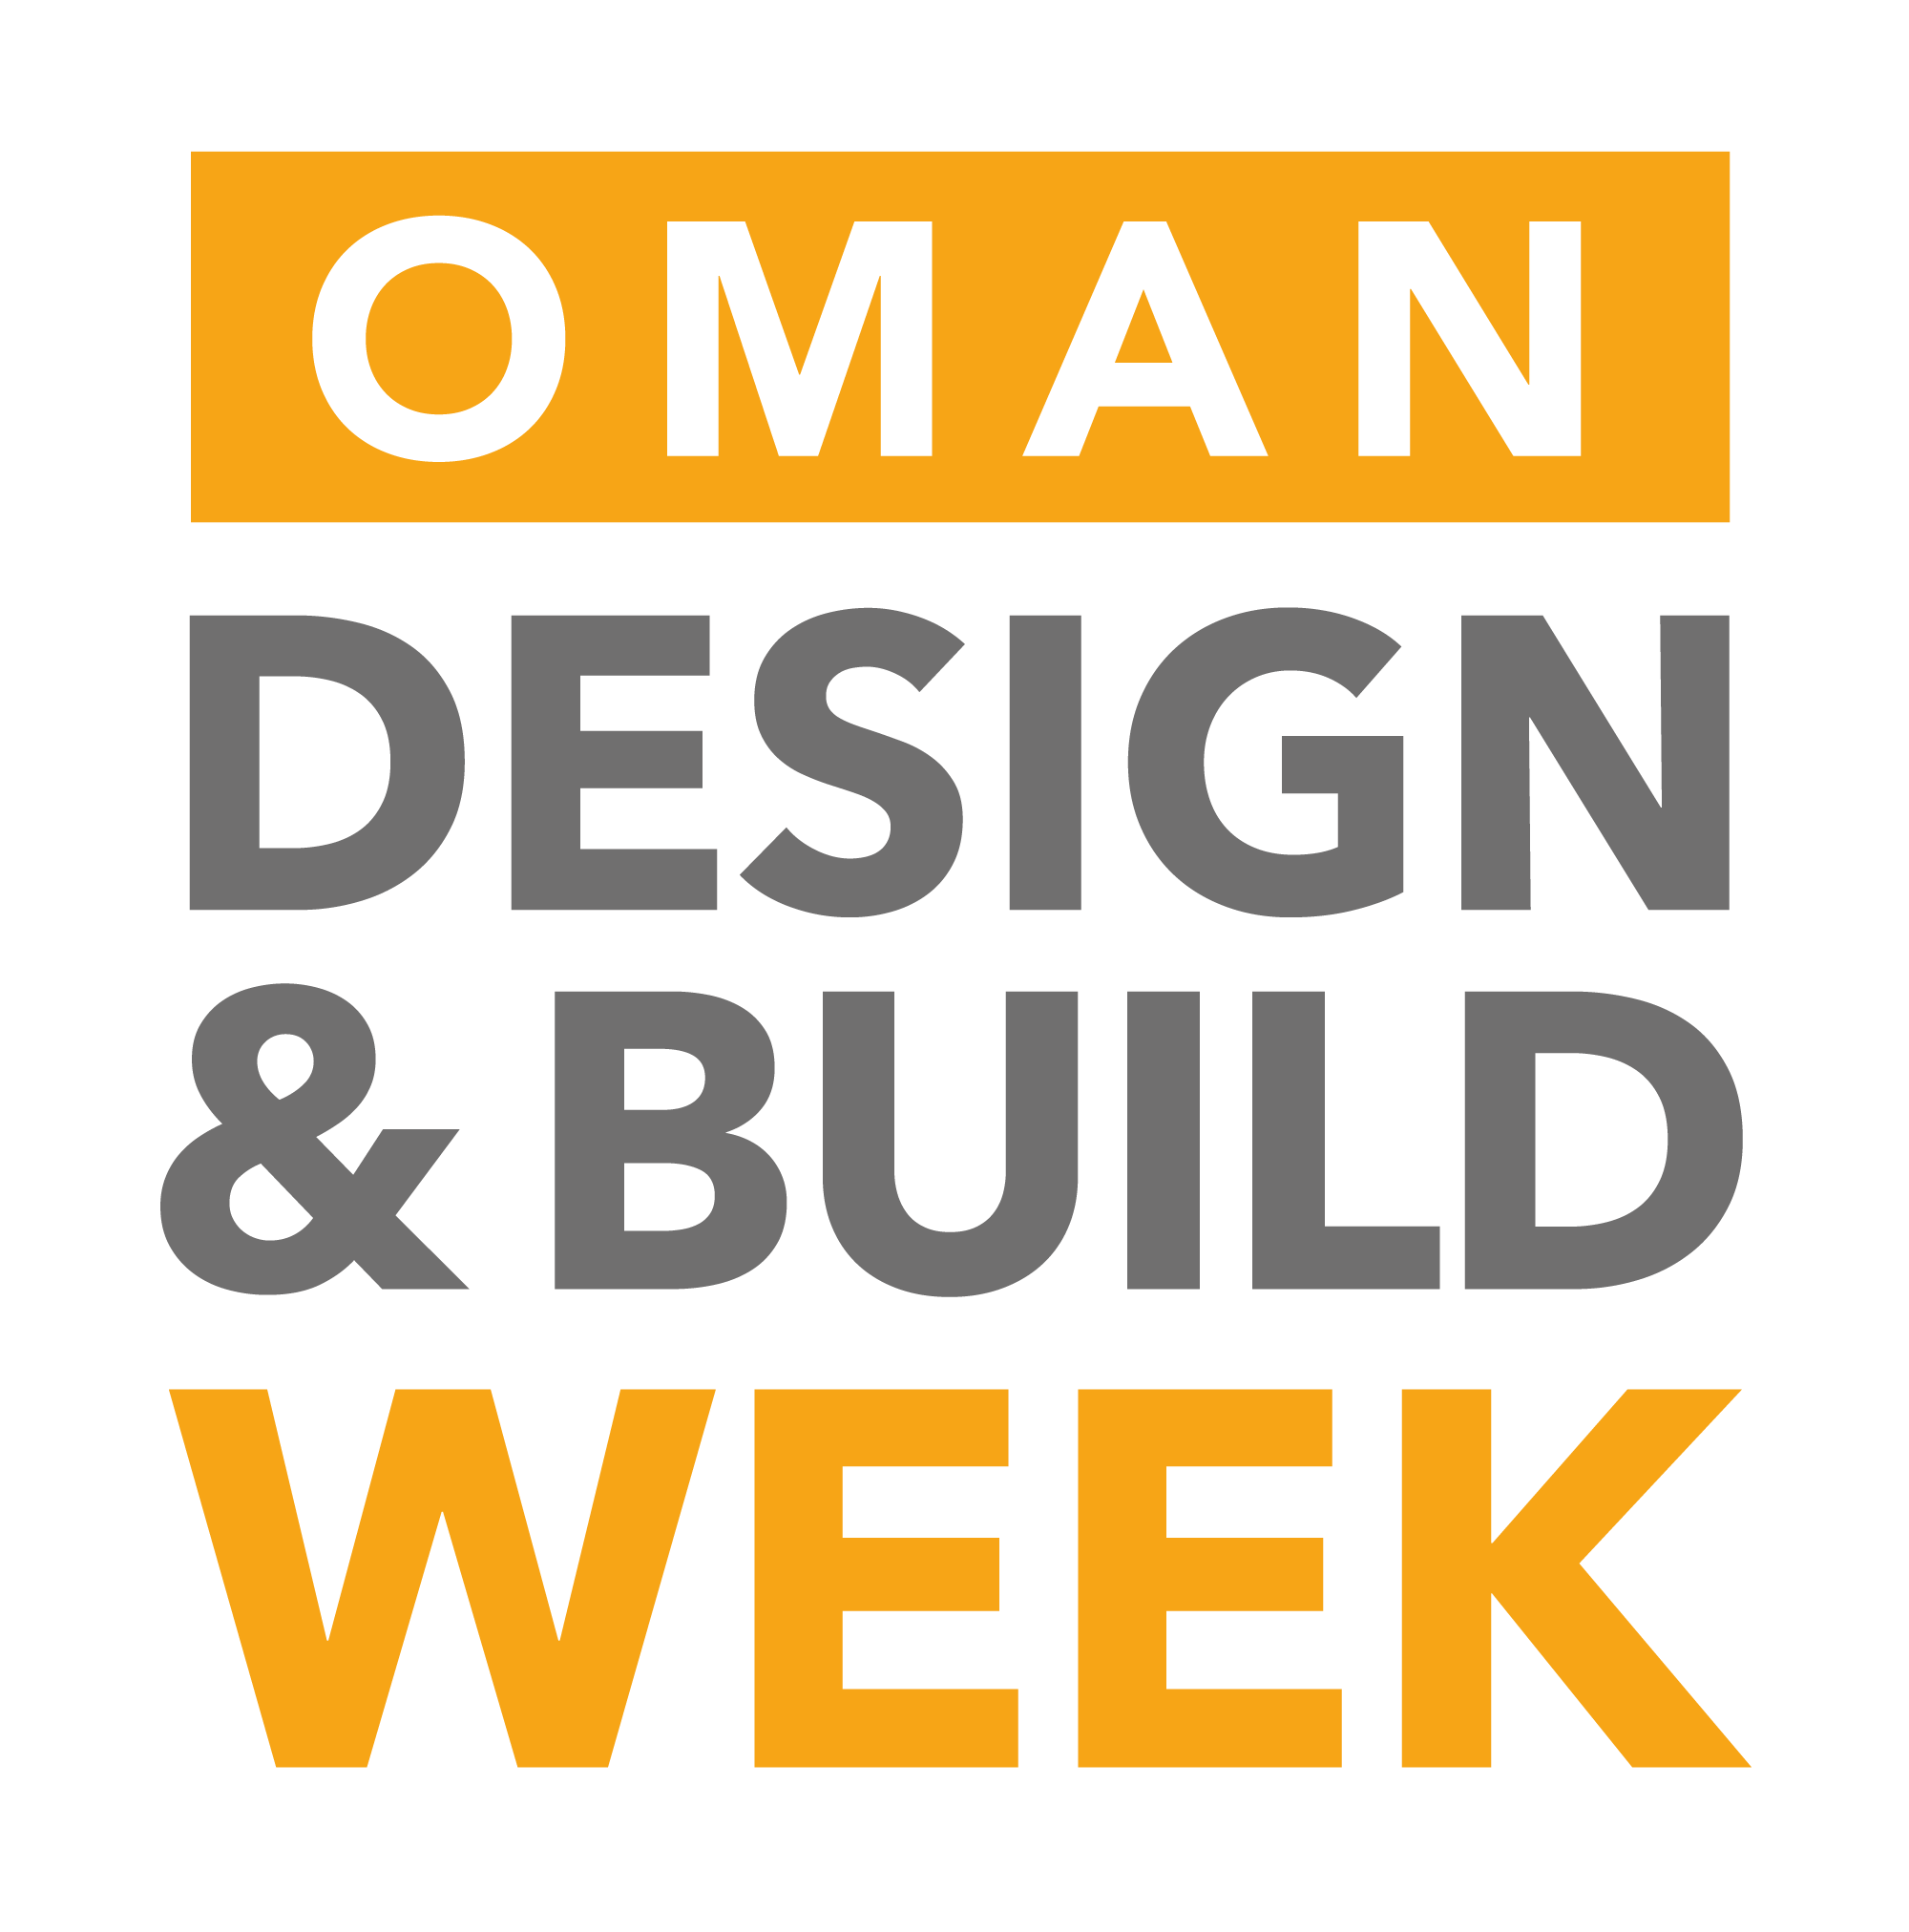 OMAN DESIGN & BUILD WEEK - 30 MARCH – 1 APRIL 2020